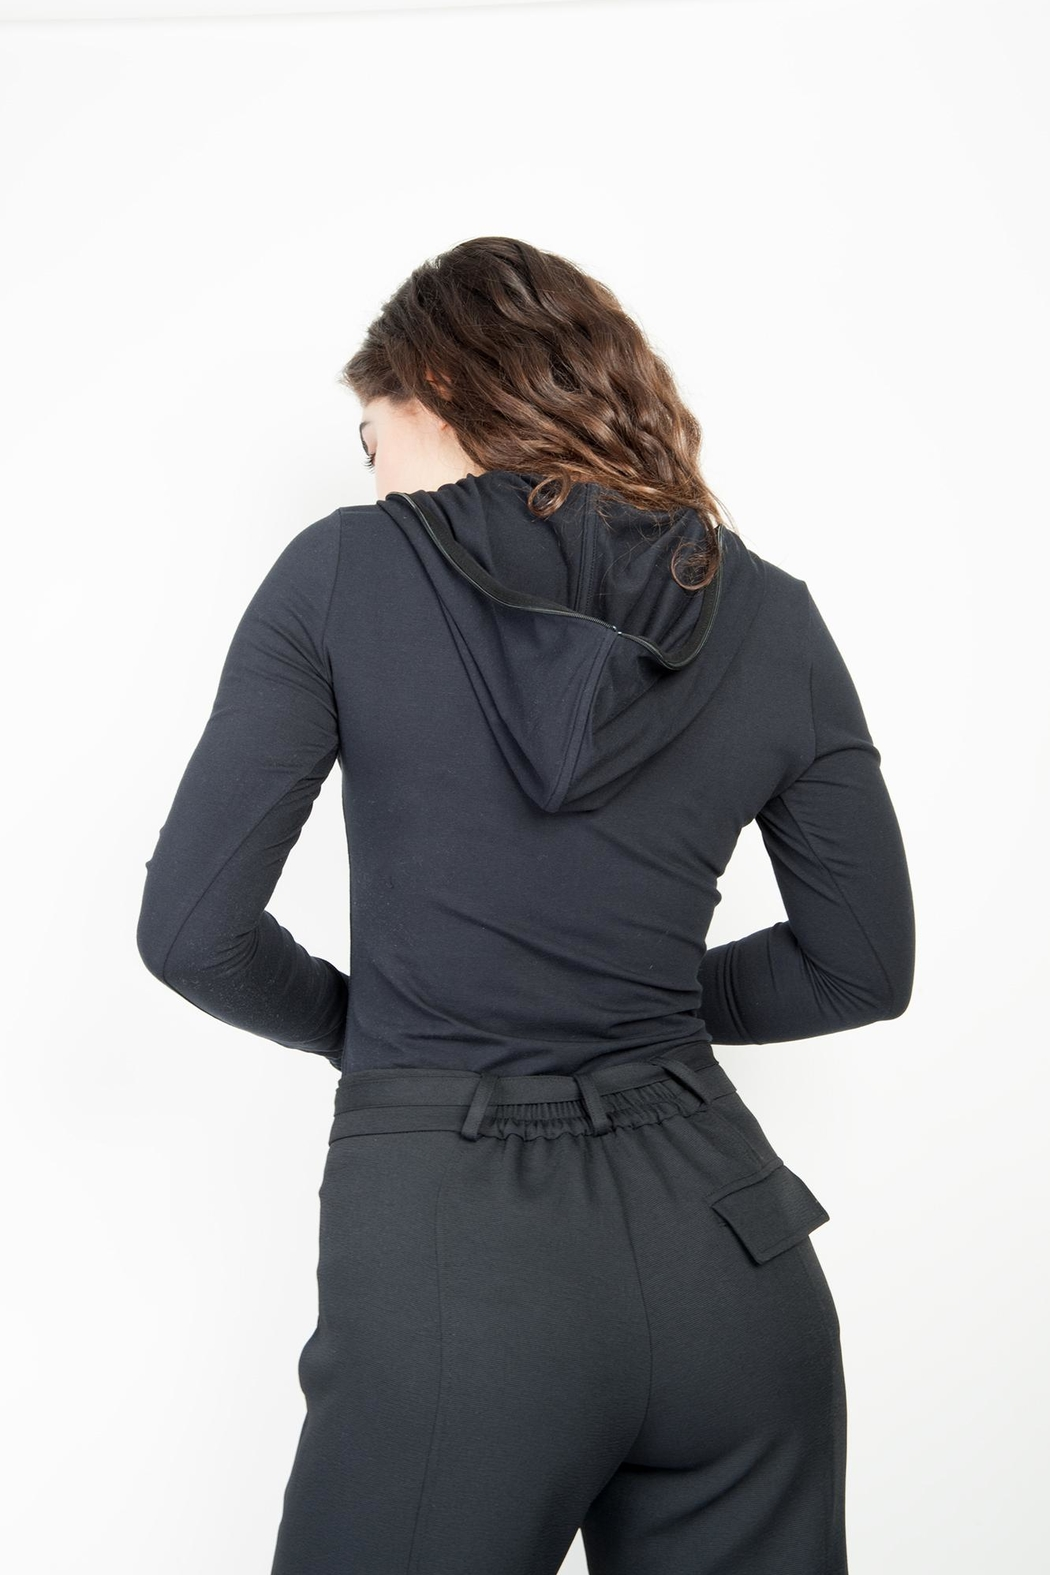 BAM Cozy Hooded Sweater from Berlin by BAM BERLIN — Shoptiques